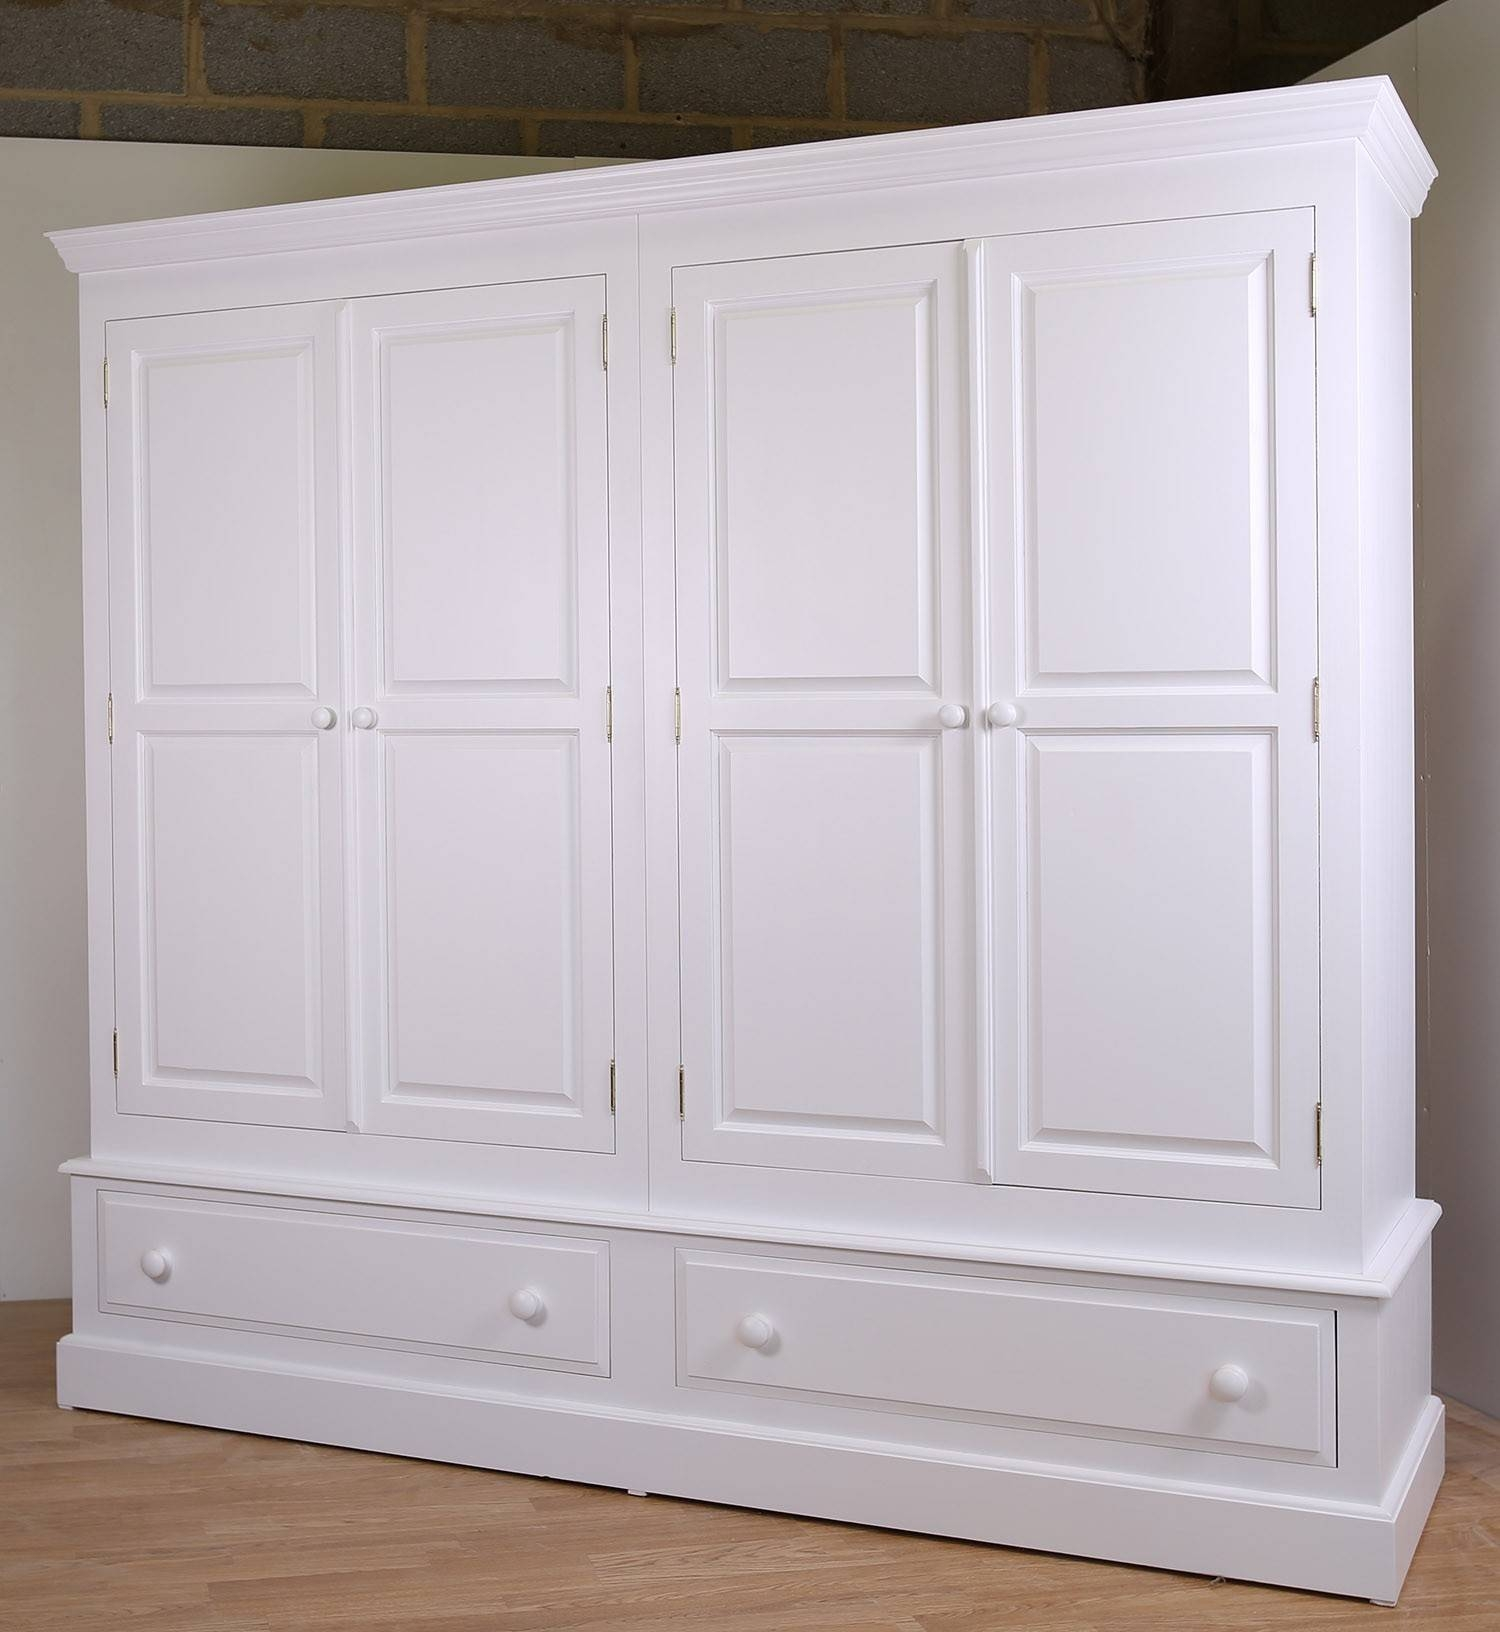 Farrow & Ball Painted 4 Door Wardrobe With Drawers In 3 Sizes In 4 Door Wardrobes (View 13 of 15)